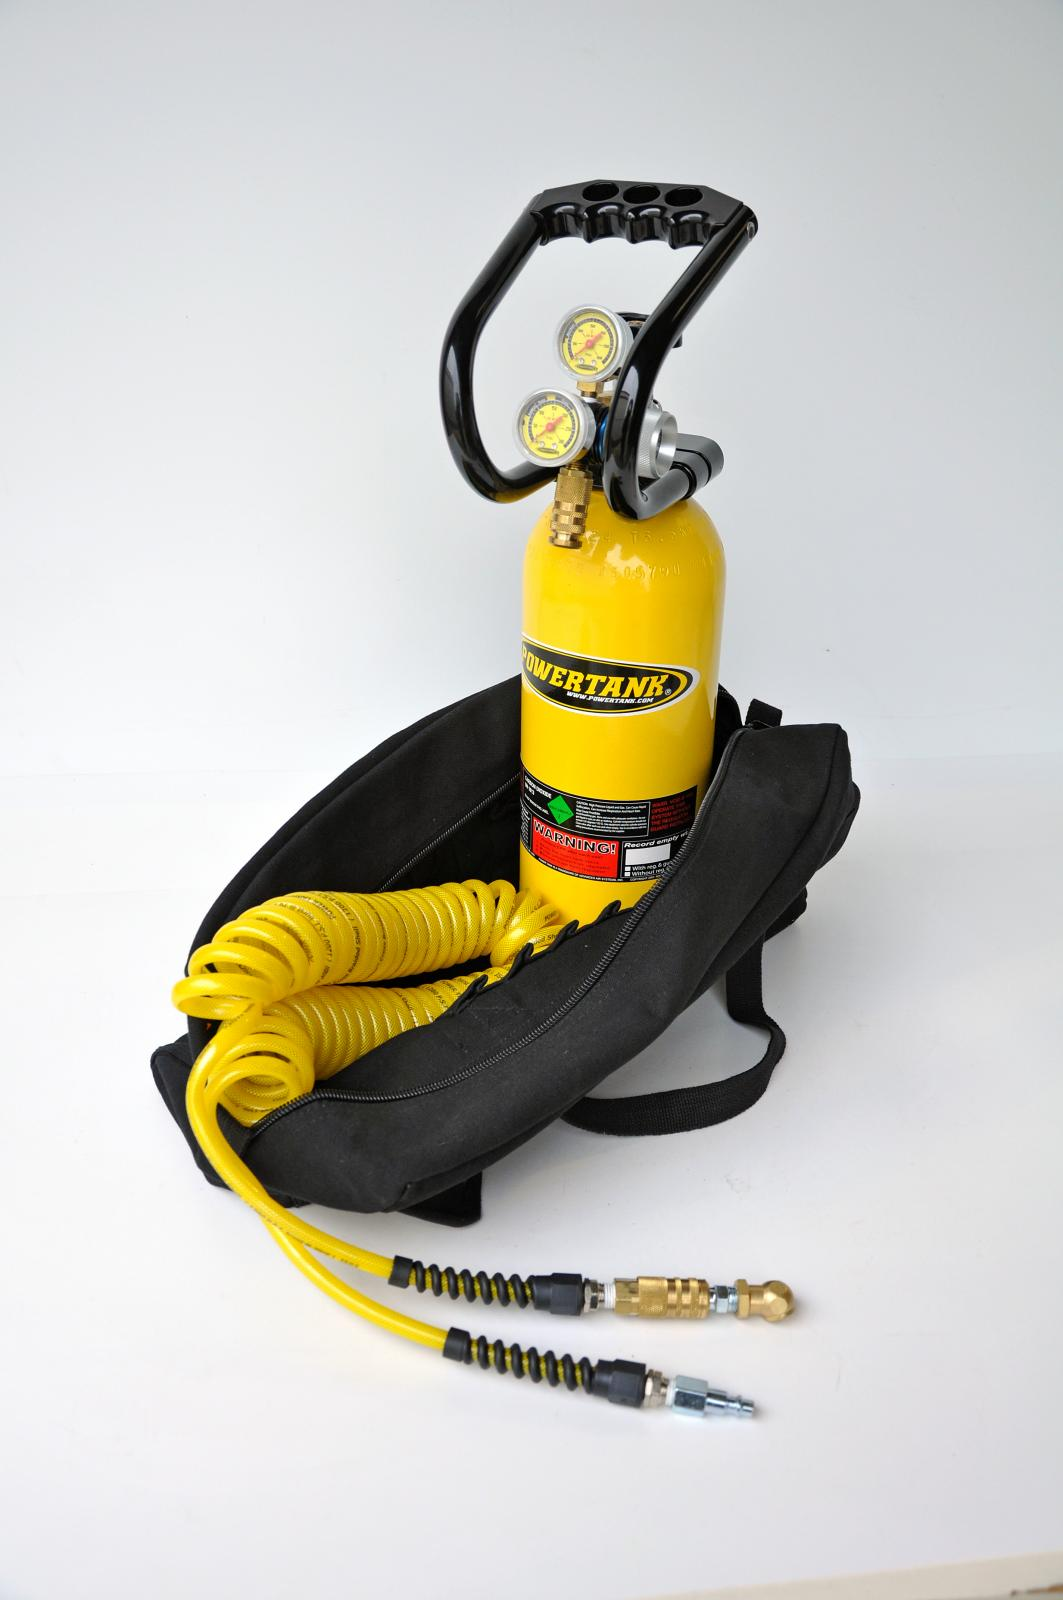 CO2 Tank 5 LB Track Pack Package A System 250 PSI Team Yellow Power Tank